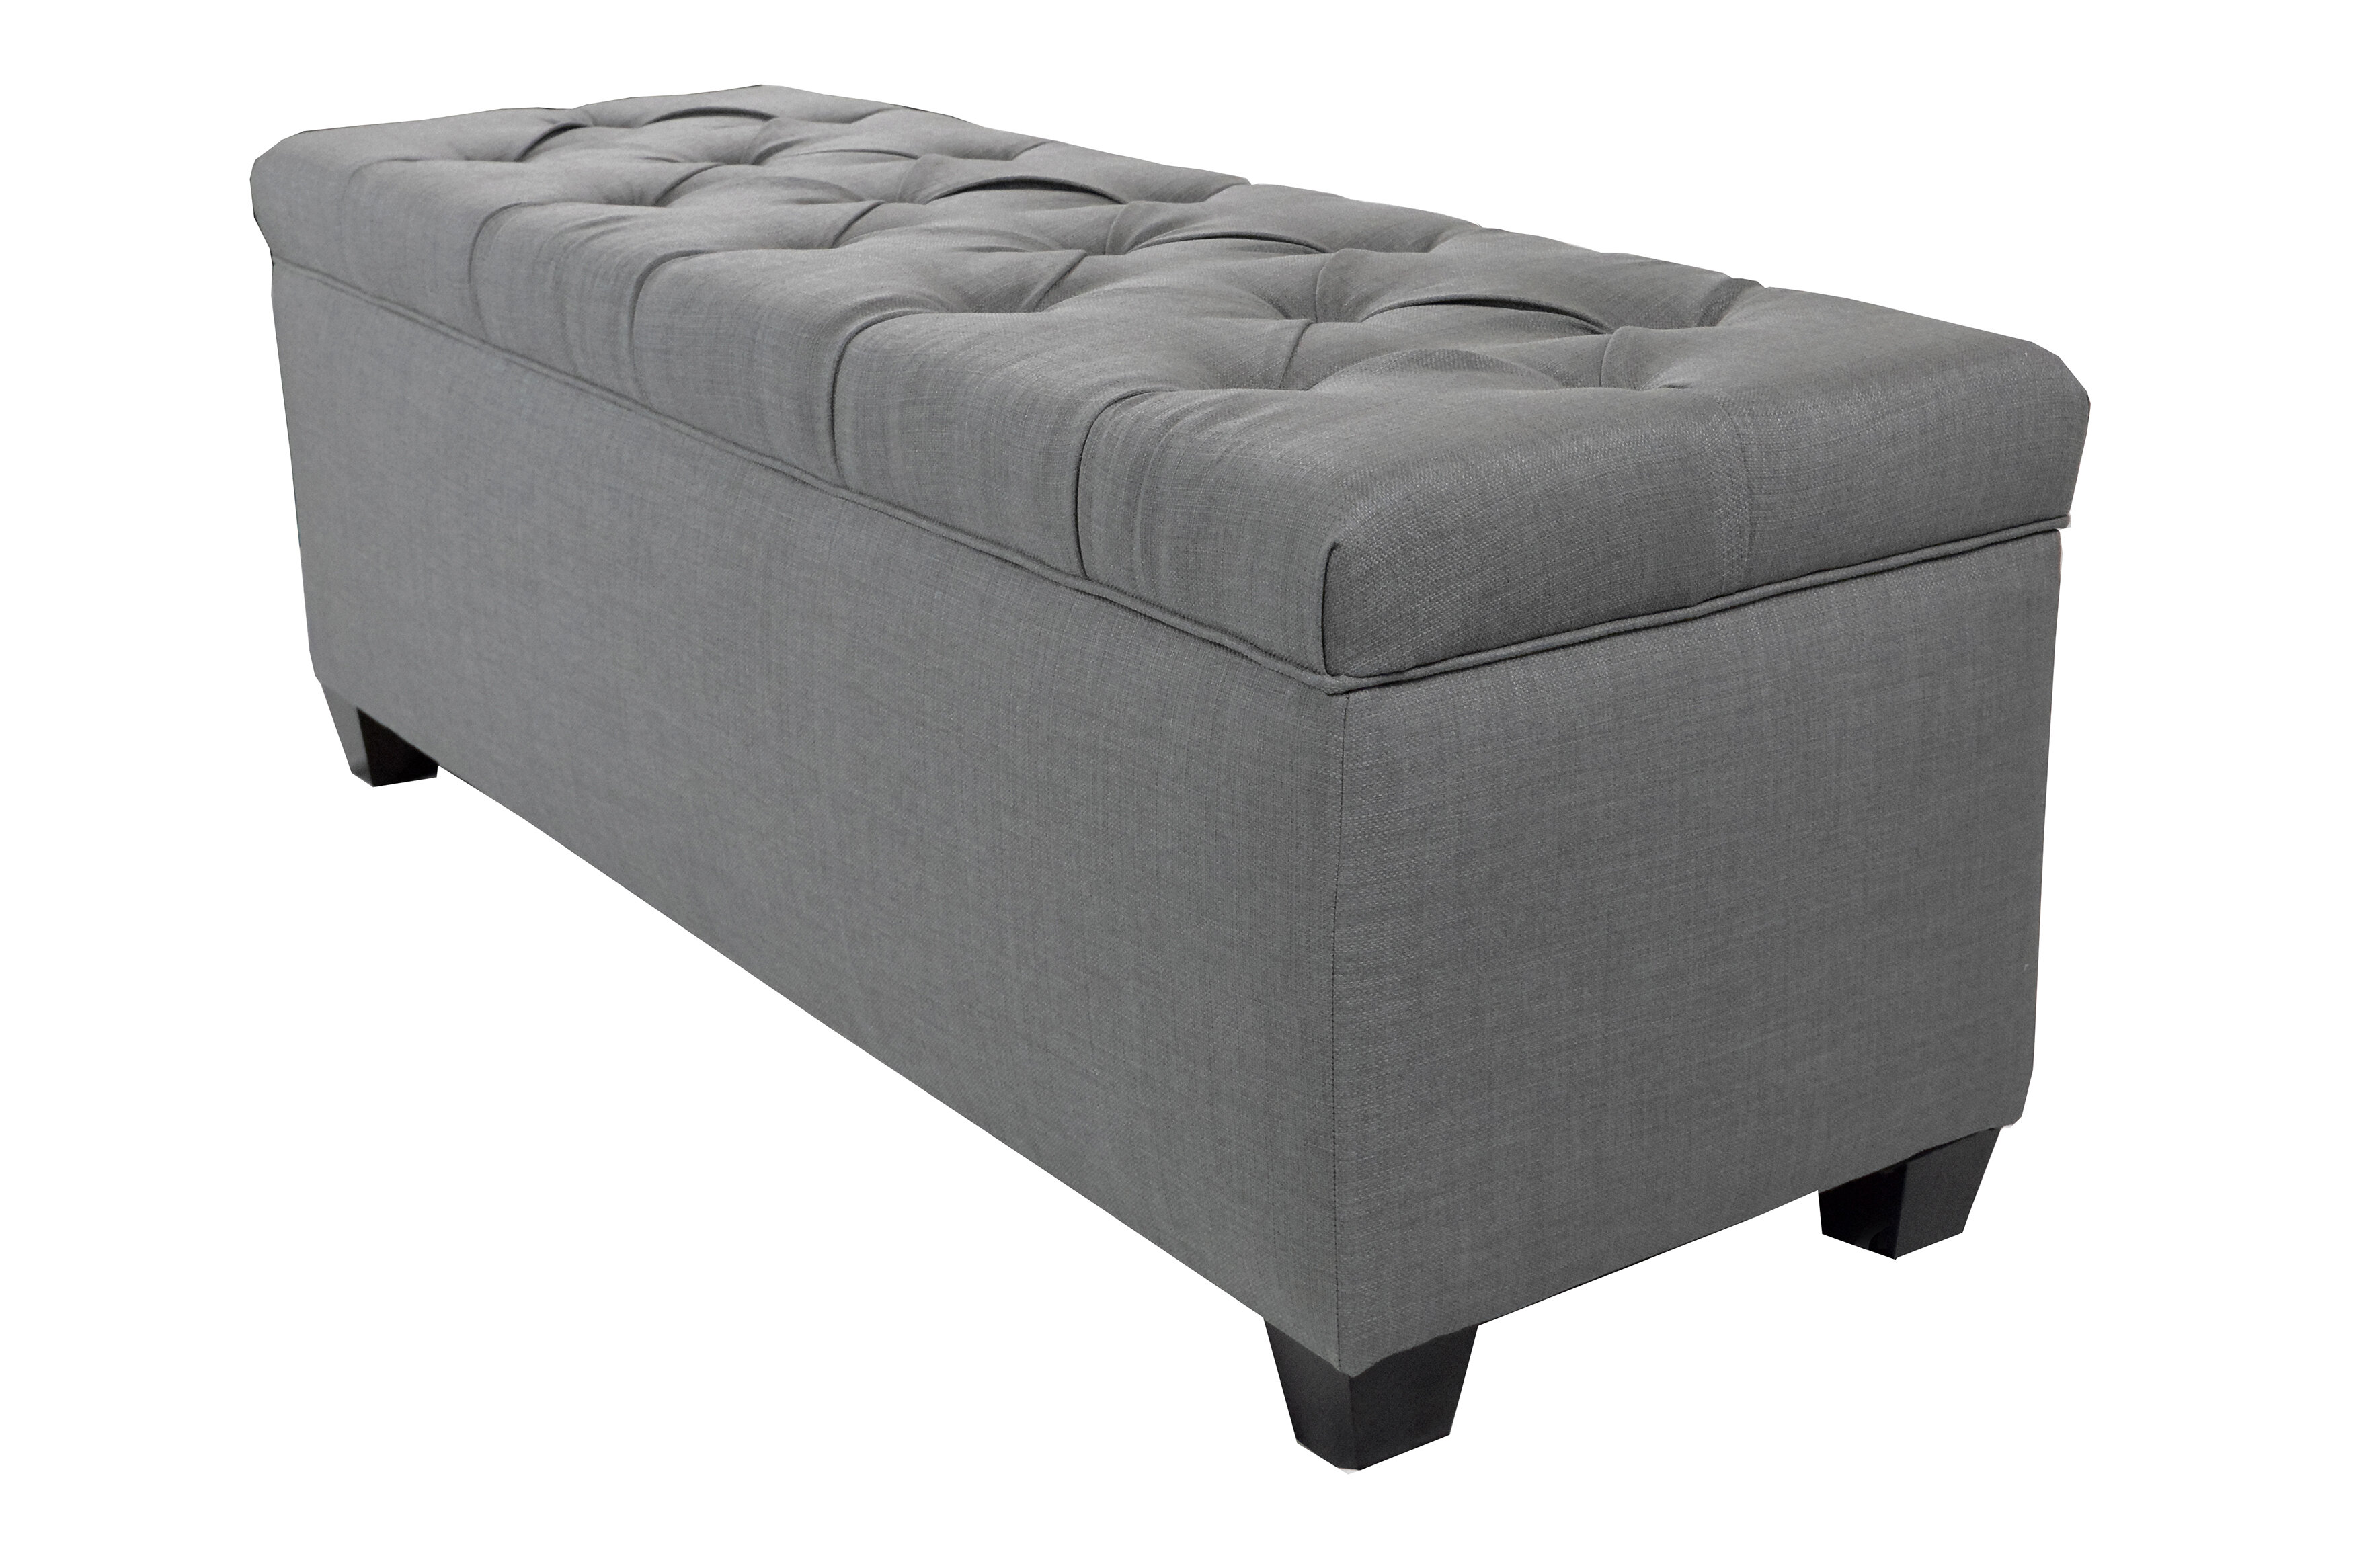 Admirable Heaney Diamond Tufted Upholstered Storage Bench Gmtry Best Dining Table And Chair Ideas Images Gmtryco